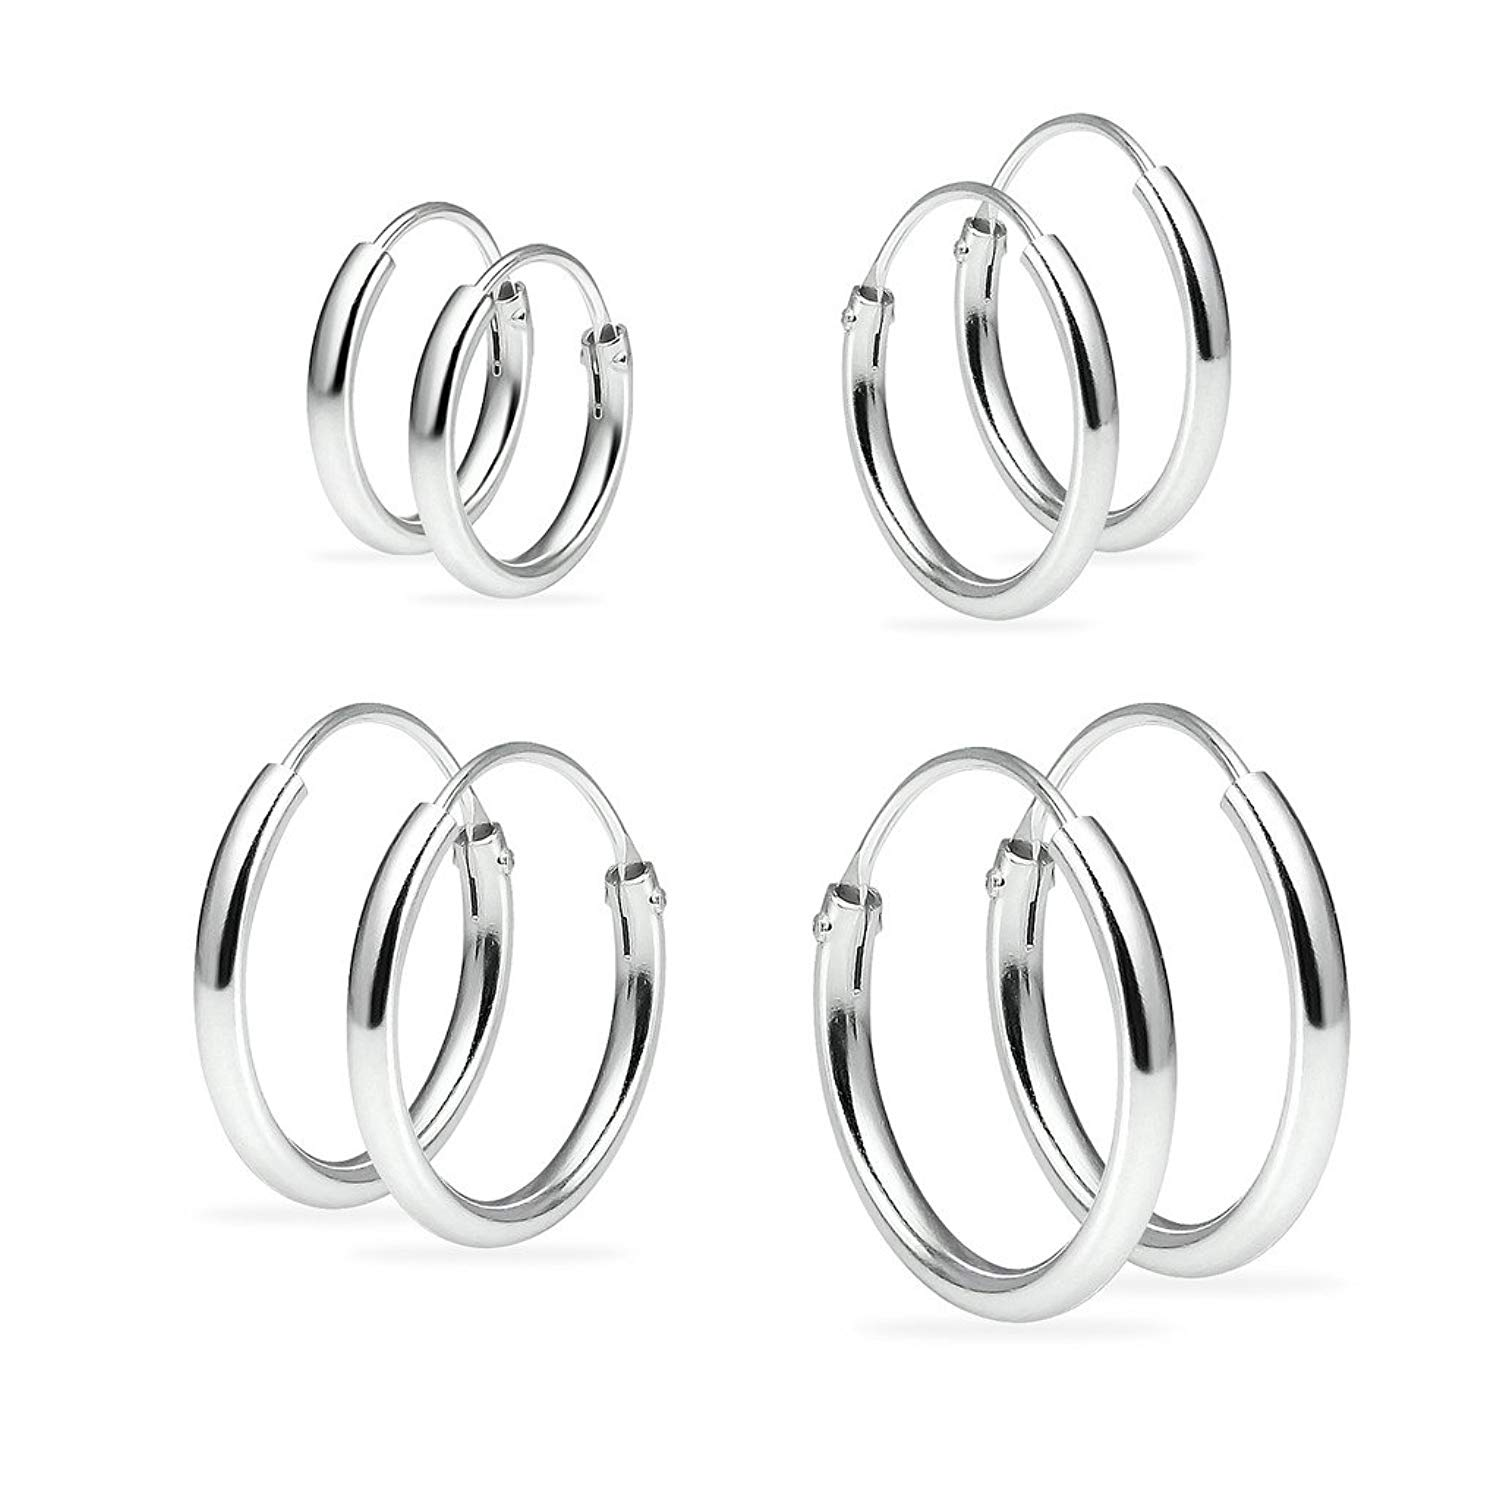 Set of Four Sterling Silver Small Endless 1.2mm x 10mm, 12mm, 14mm &16mm Lightweight Thin Round Unisex Hoop Earrings Assorted Colors